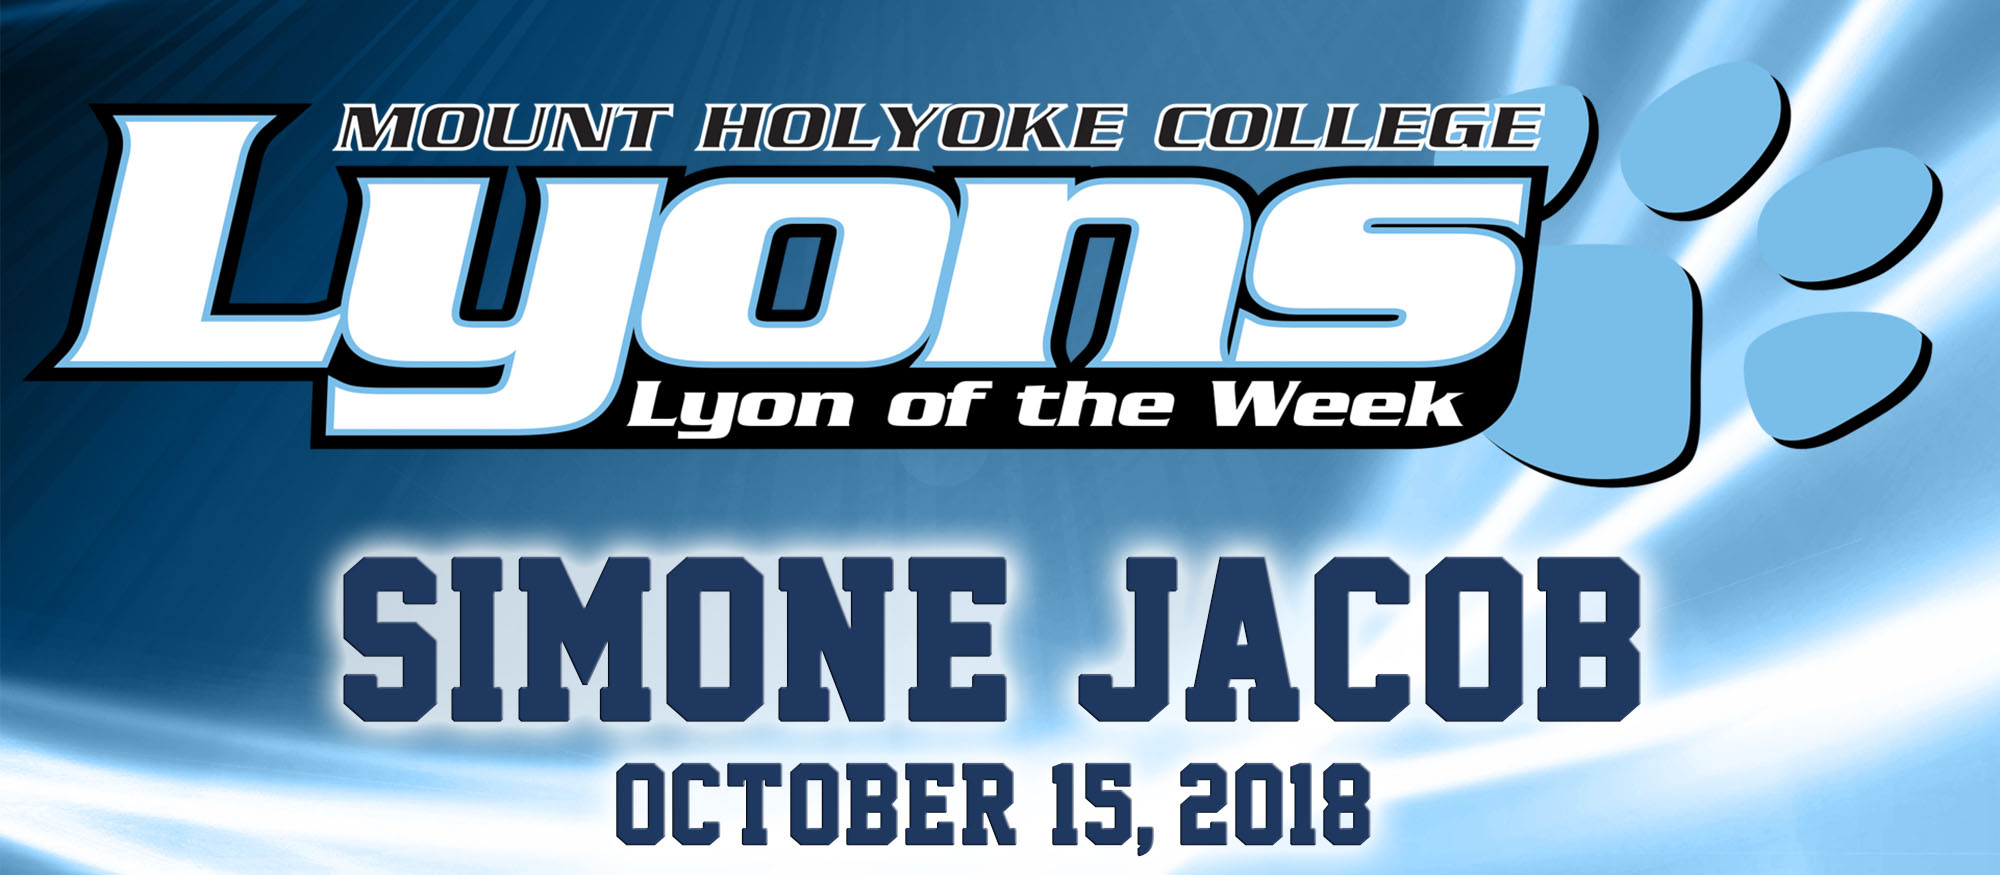 Graphic for the Lyon of the Week for October 15, 2018, Cross Country's Simone Jacob.